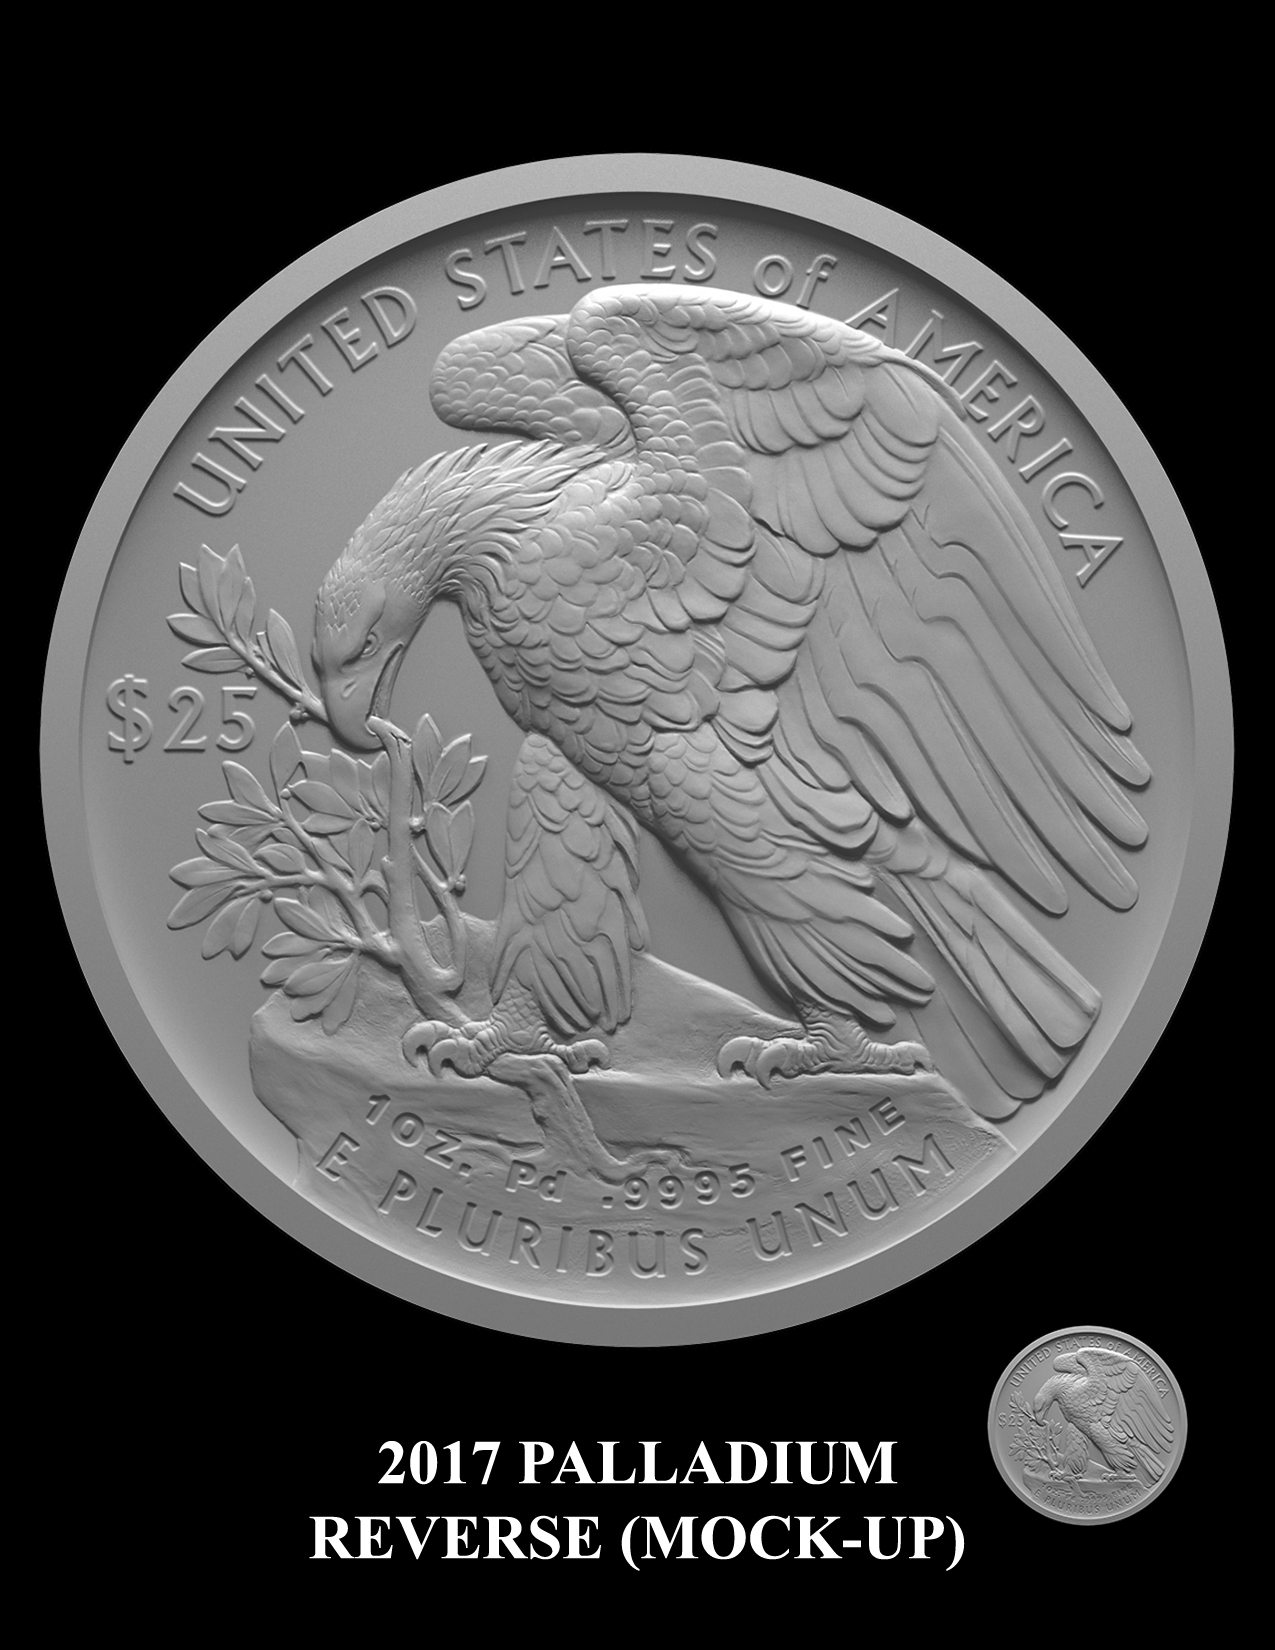 2017-Palladium-Reverse-Mock-up -- 2017 American Eagle Palladium Bullion Coin